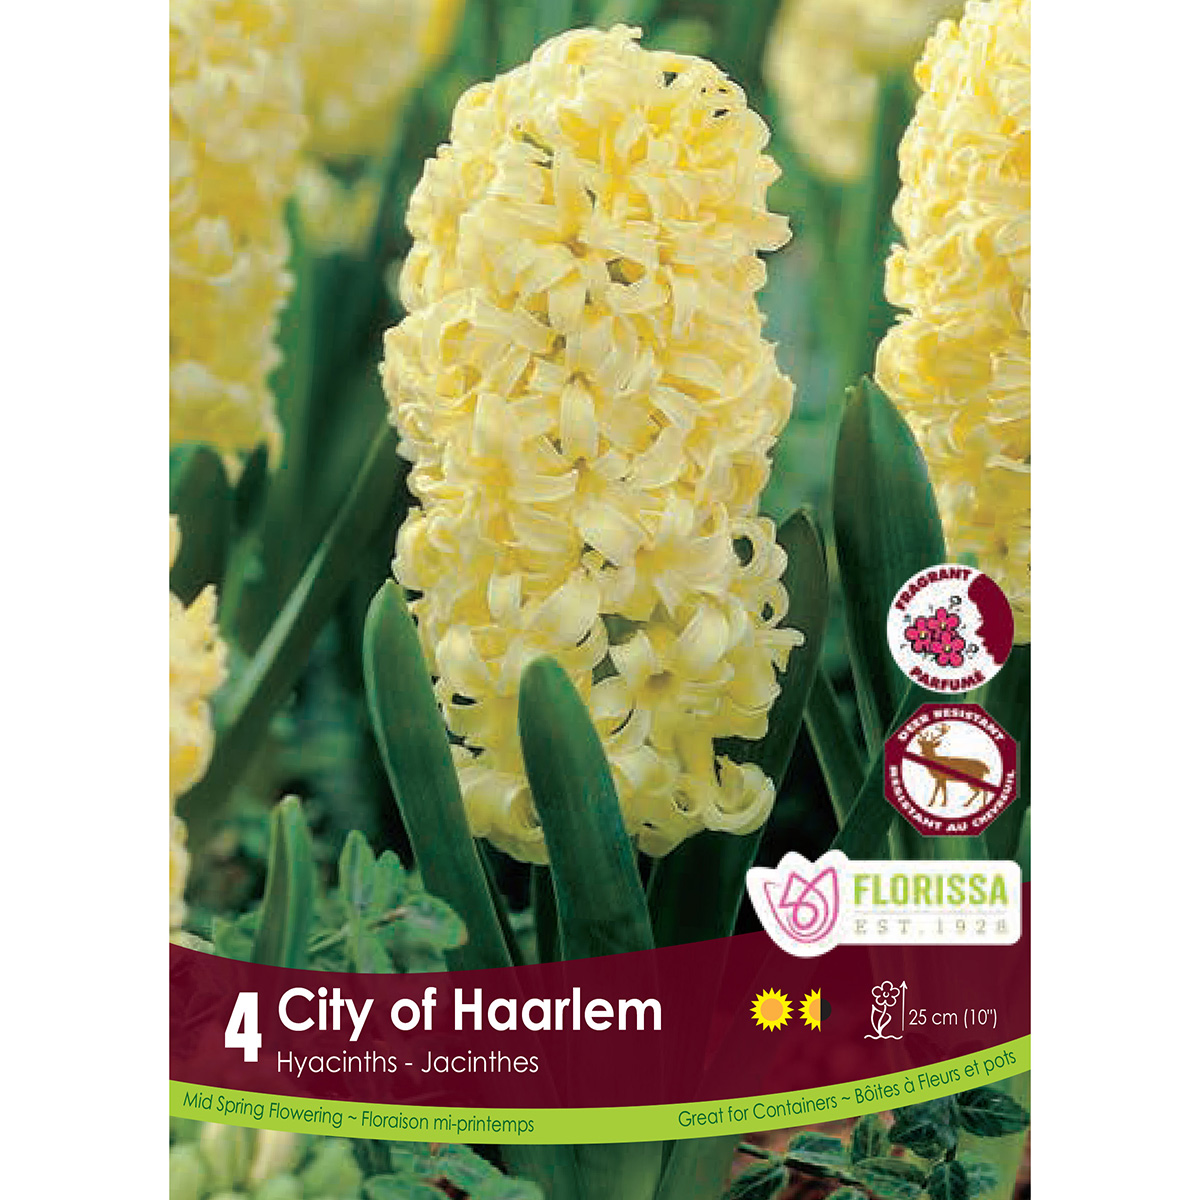 Hyacinth 'City of Haarlem' Bulbs